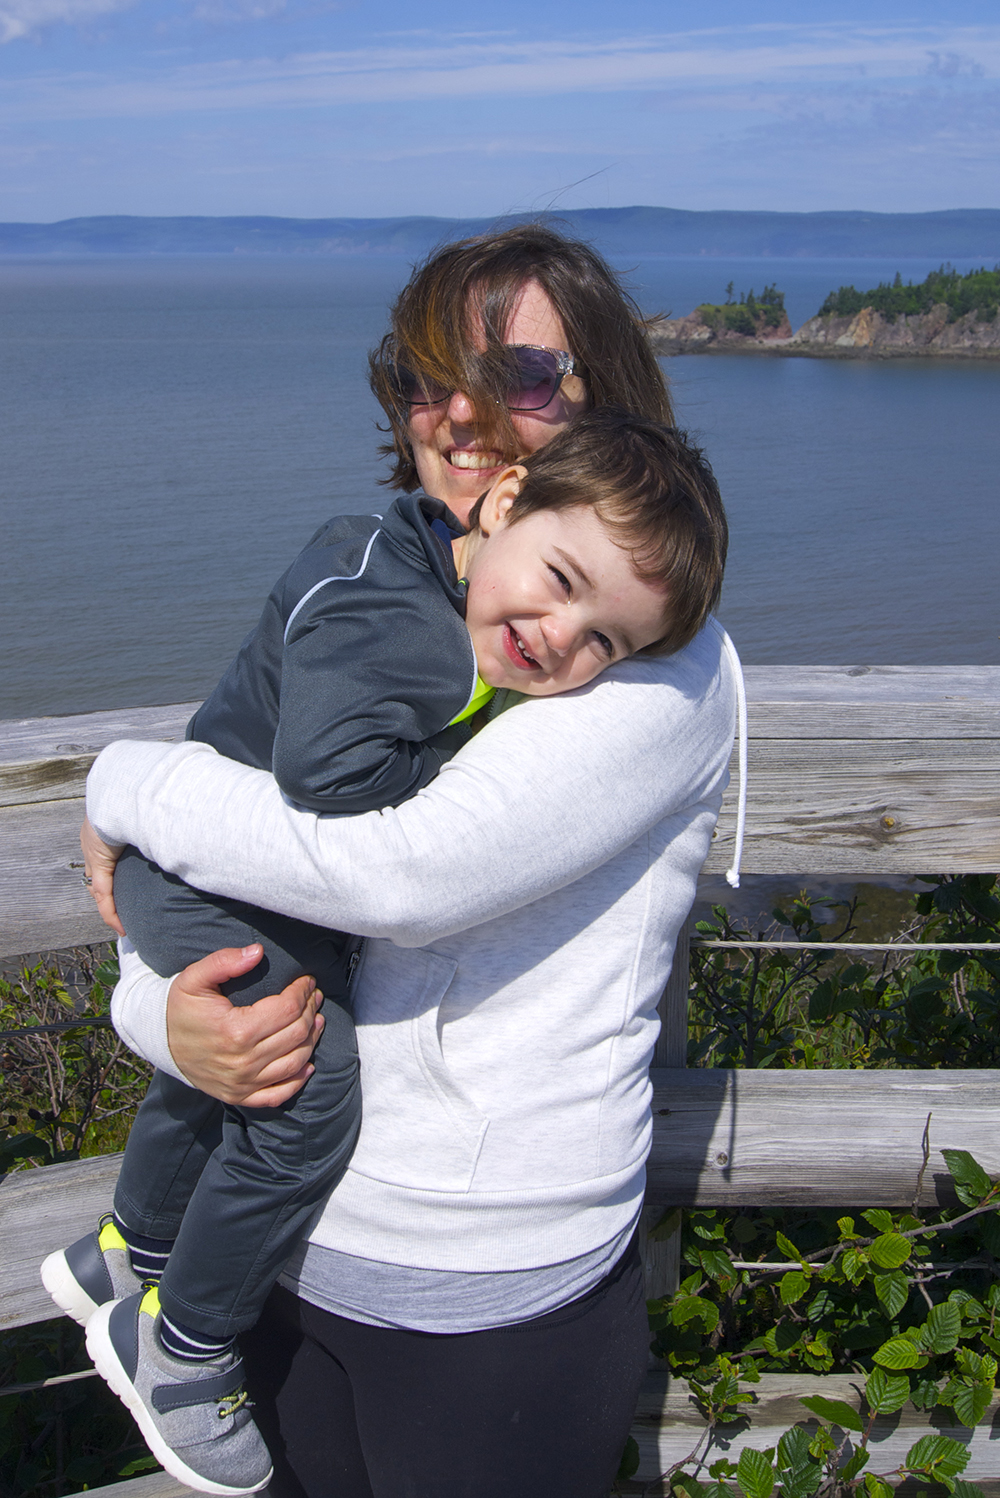 Me and my little dude at the lookout point